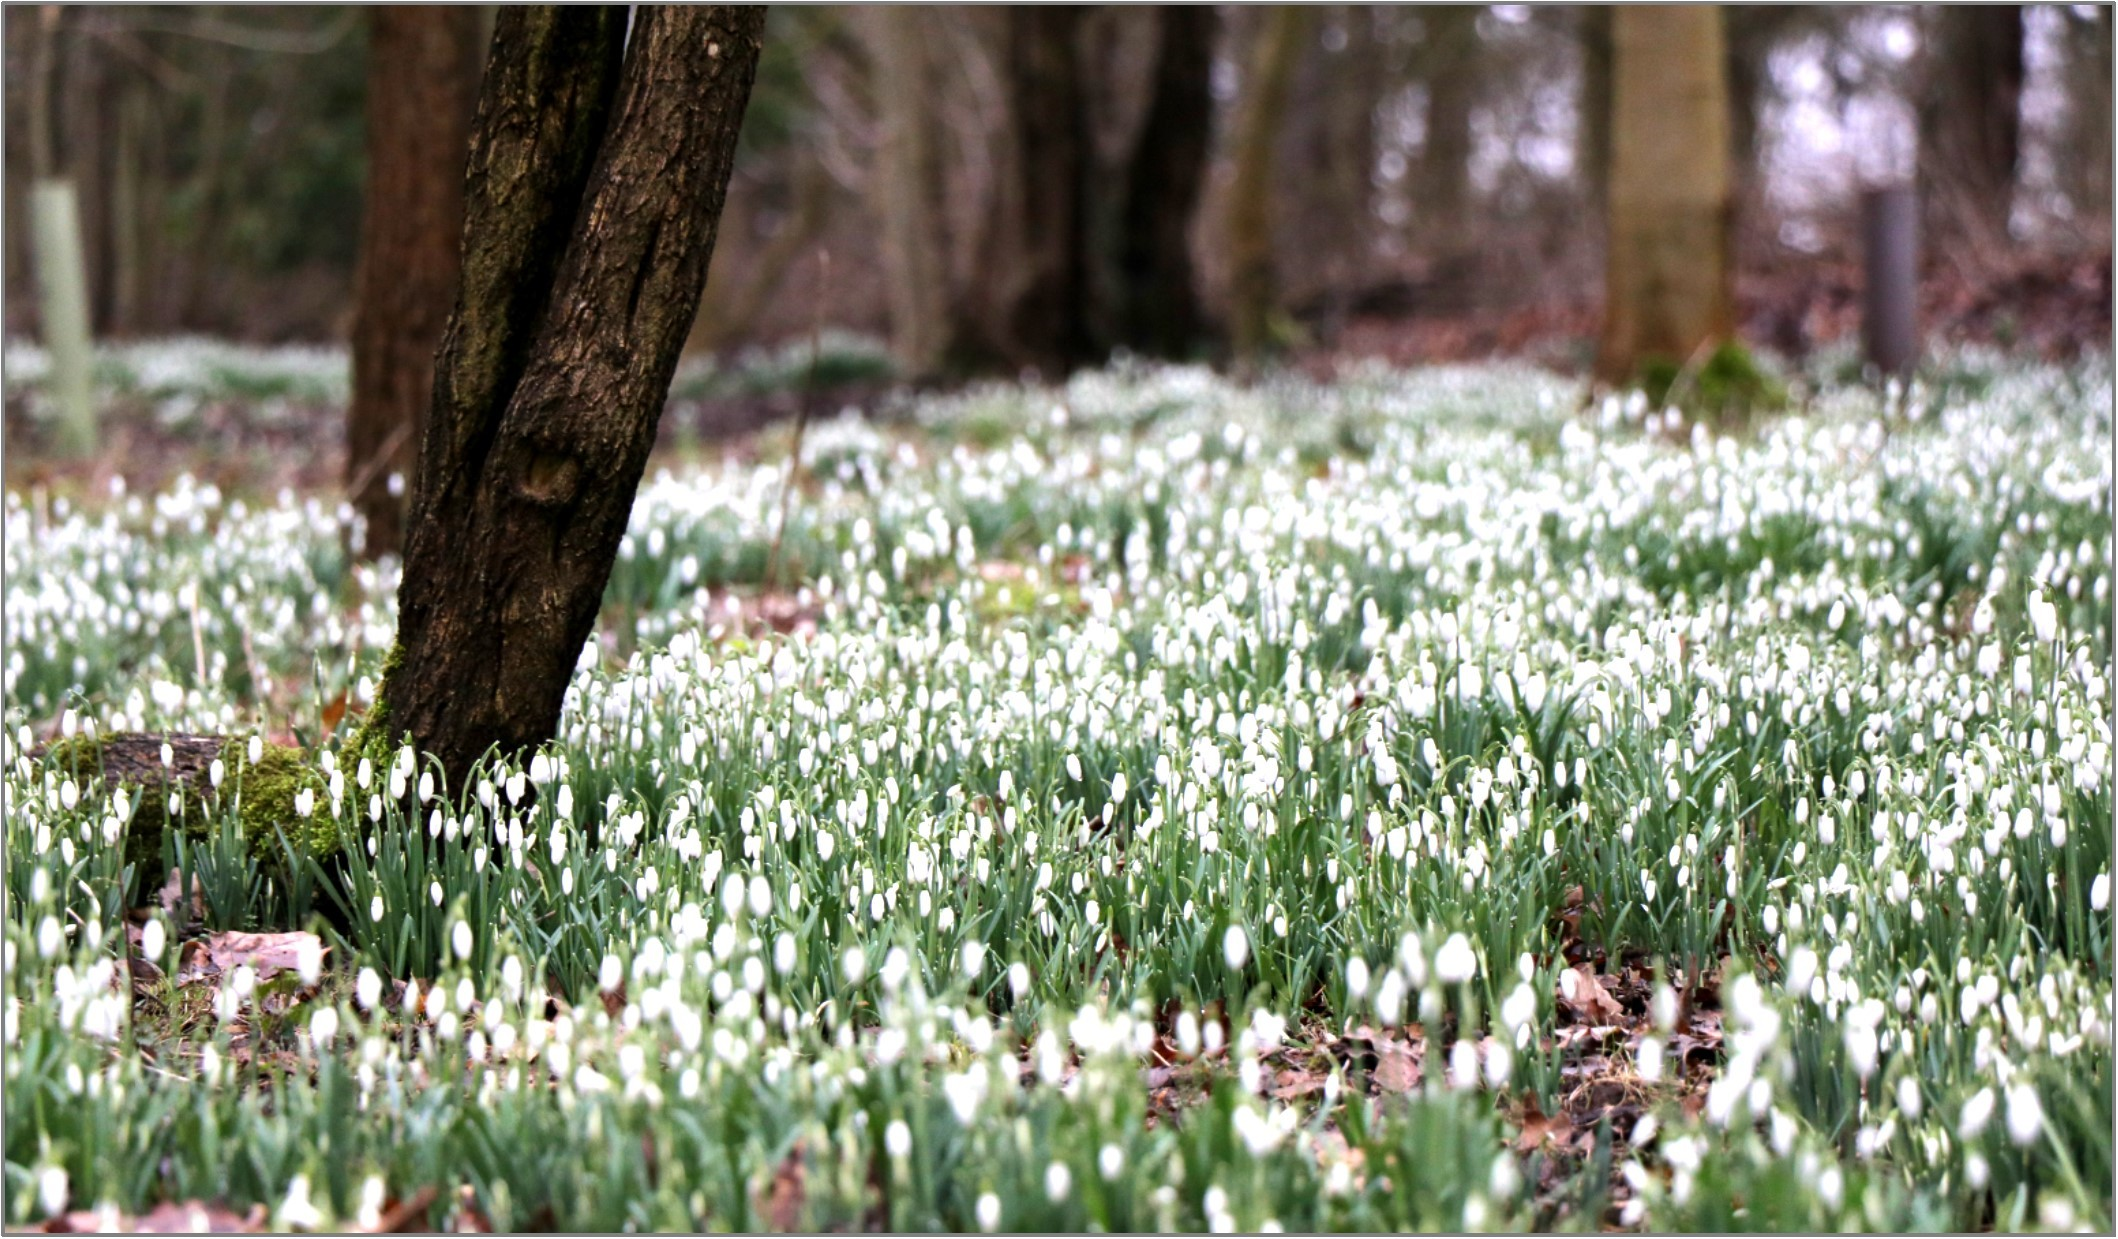 SNOW DROPS: A relaxing way to spend the afternoon